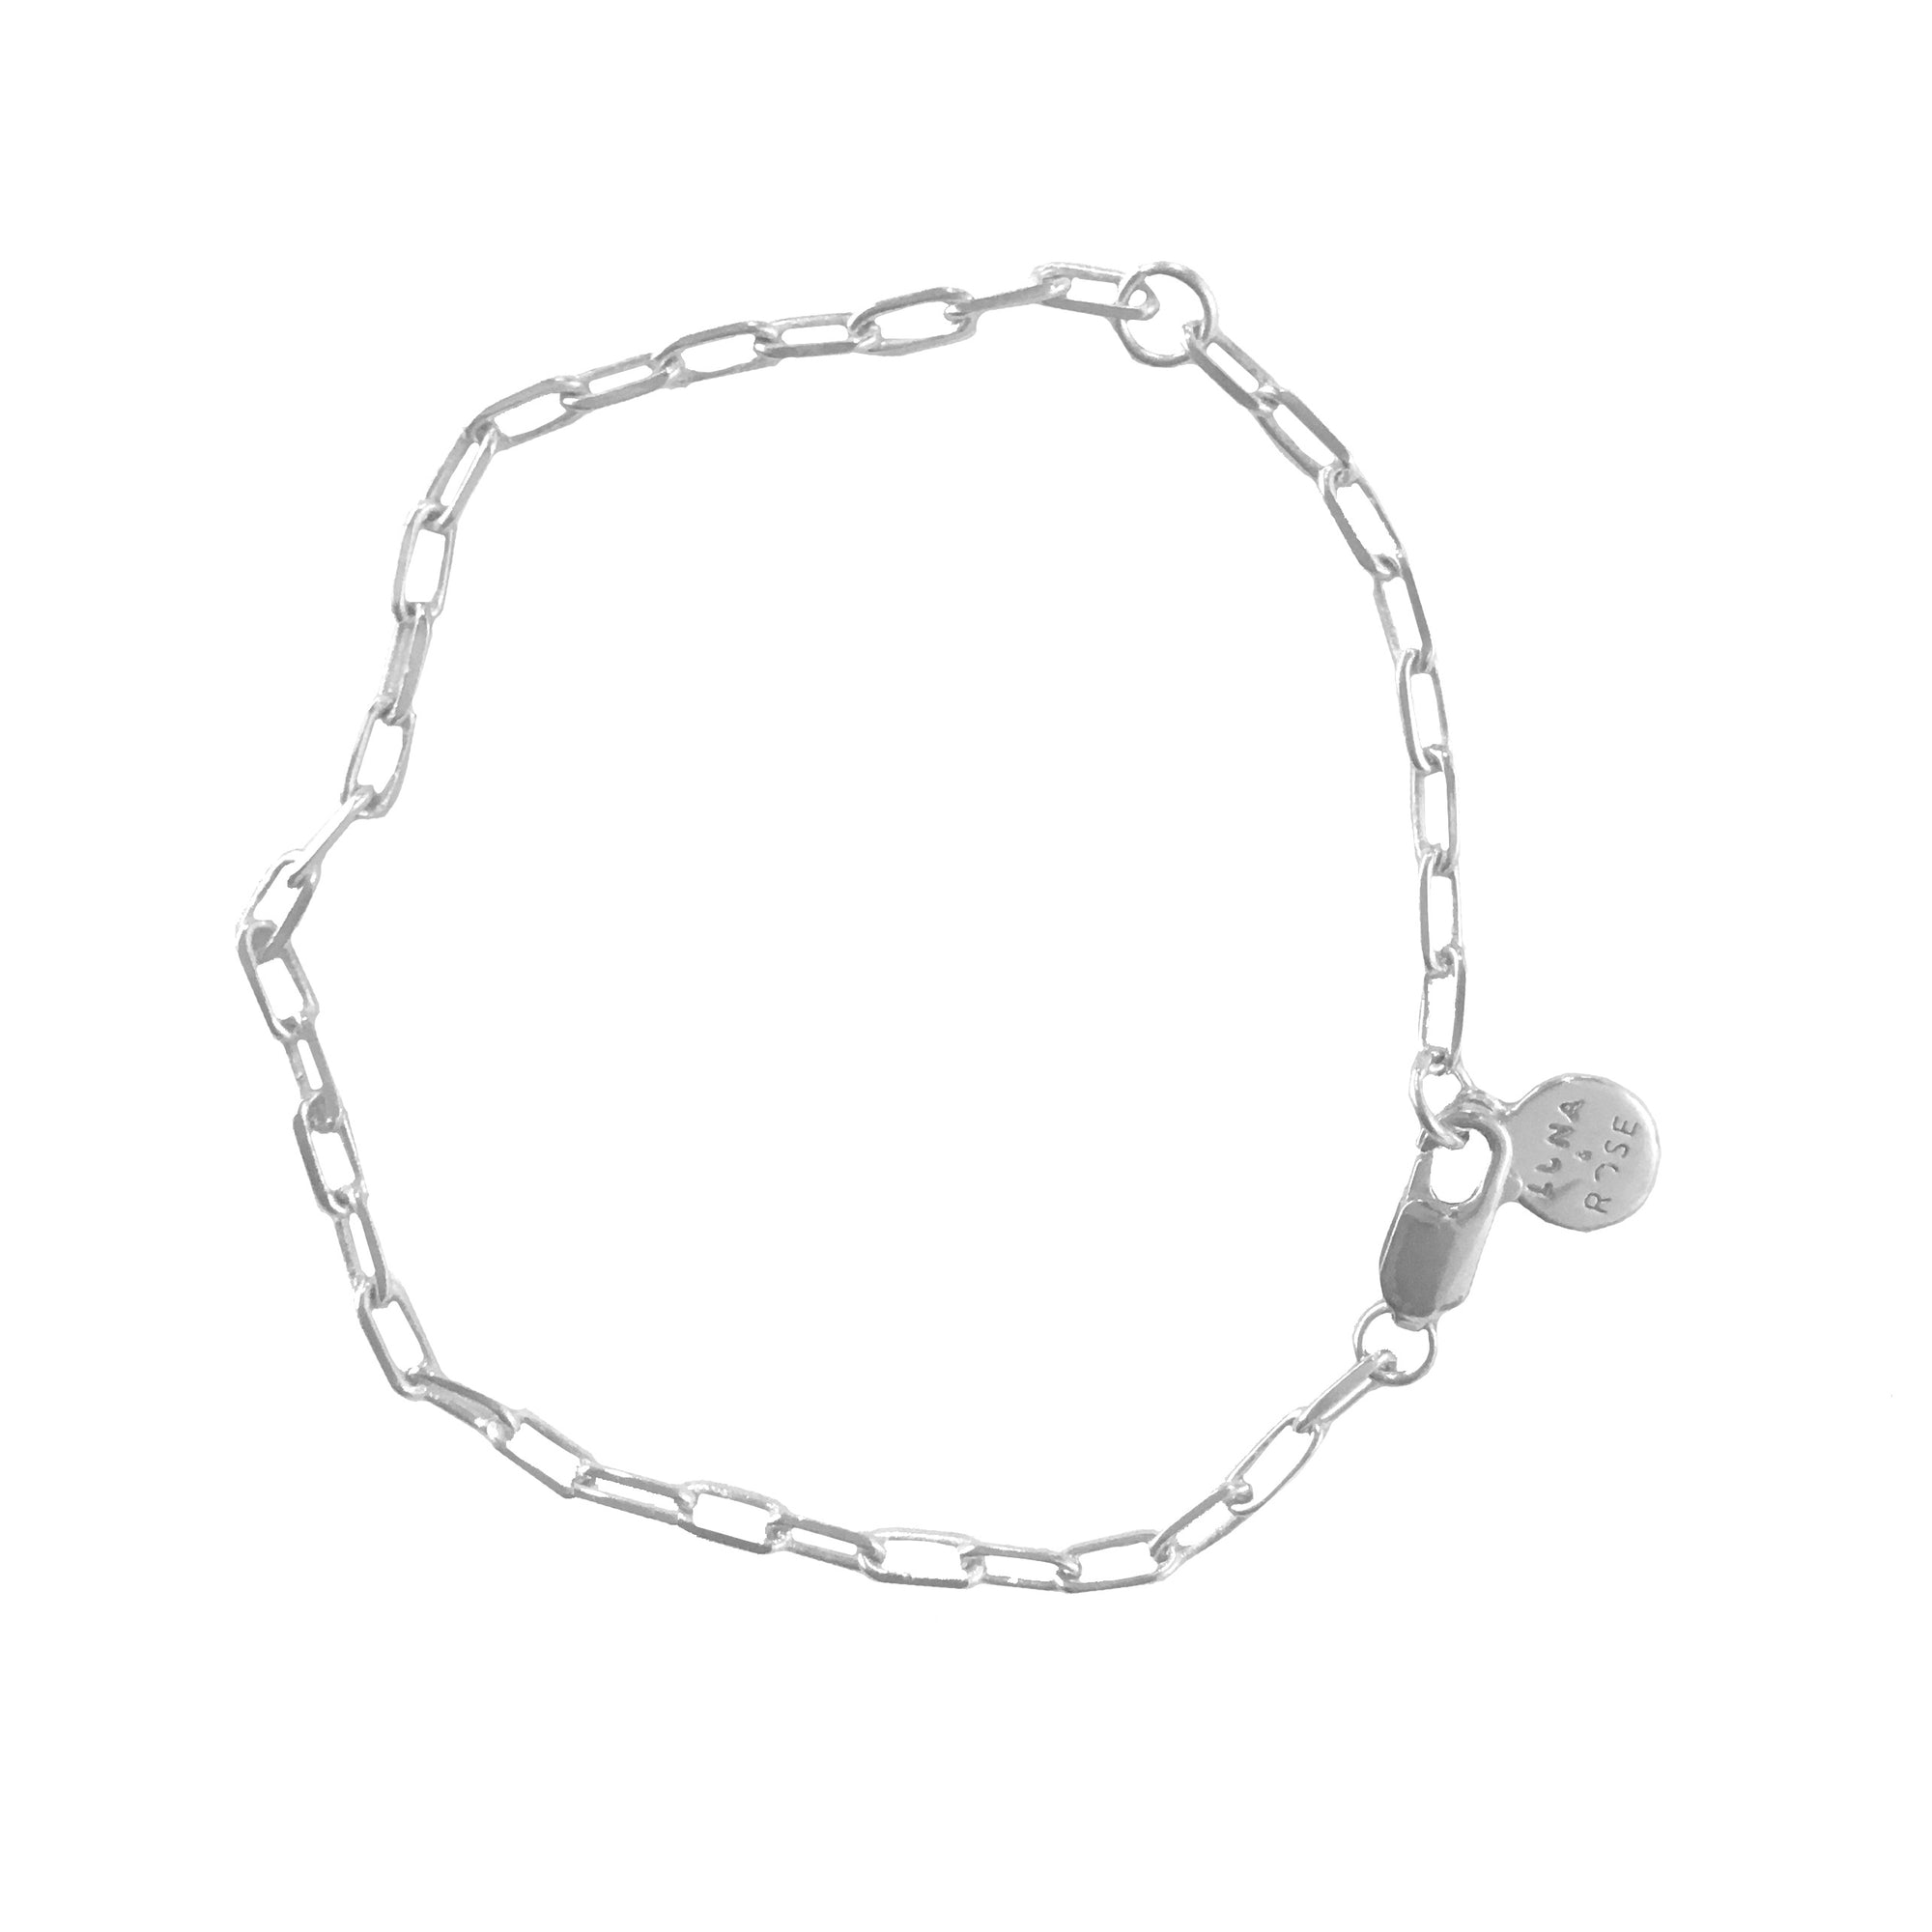 LONG BEACH LINK CHAIN BRACELET - Silver